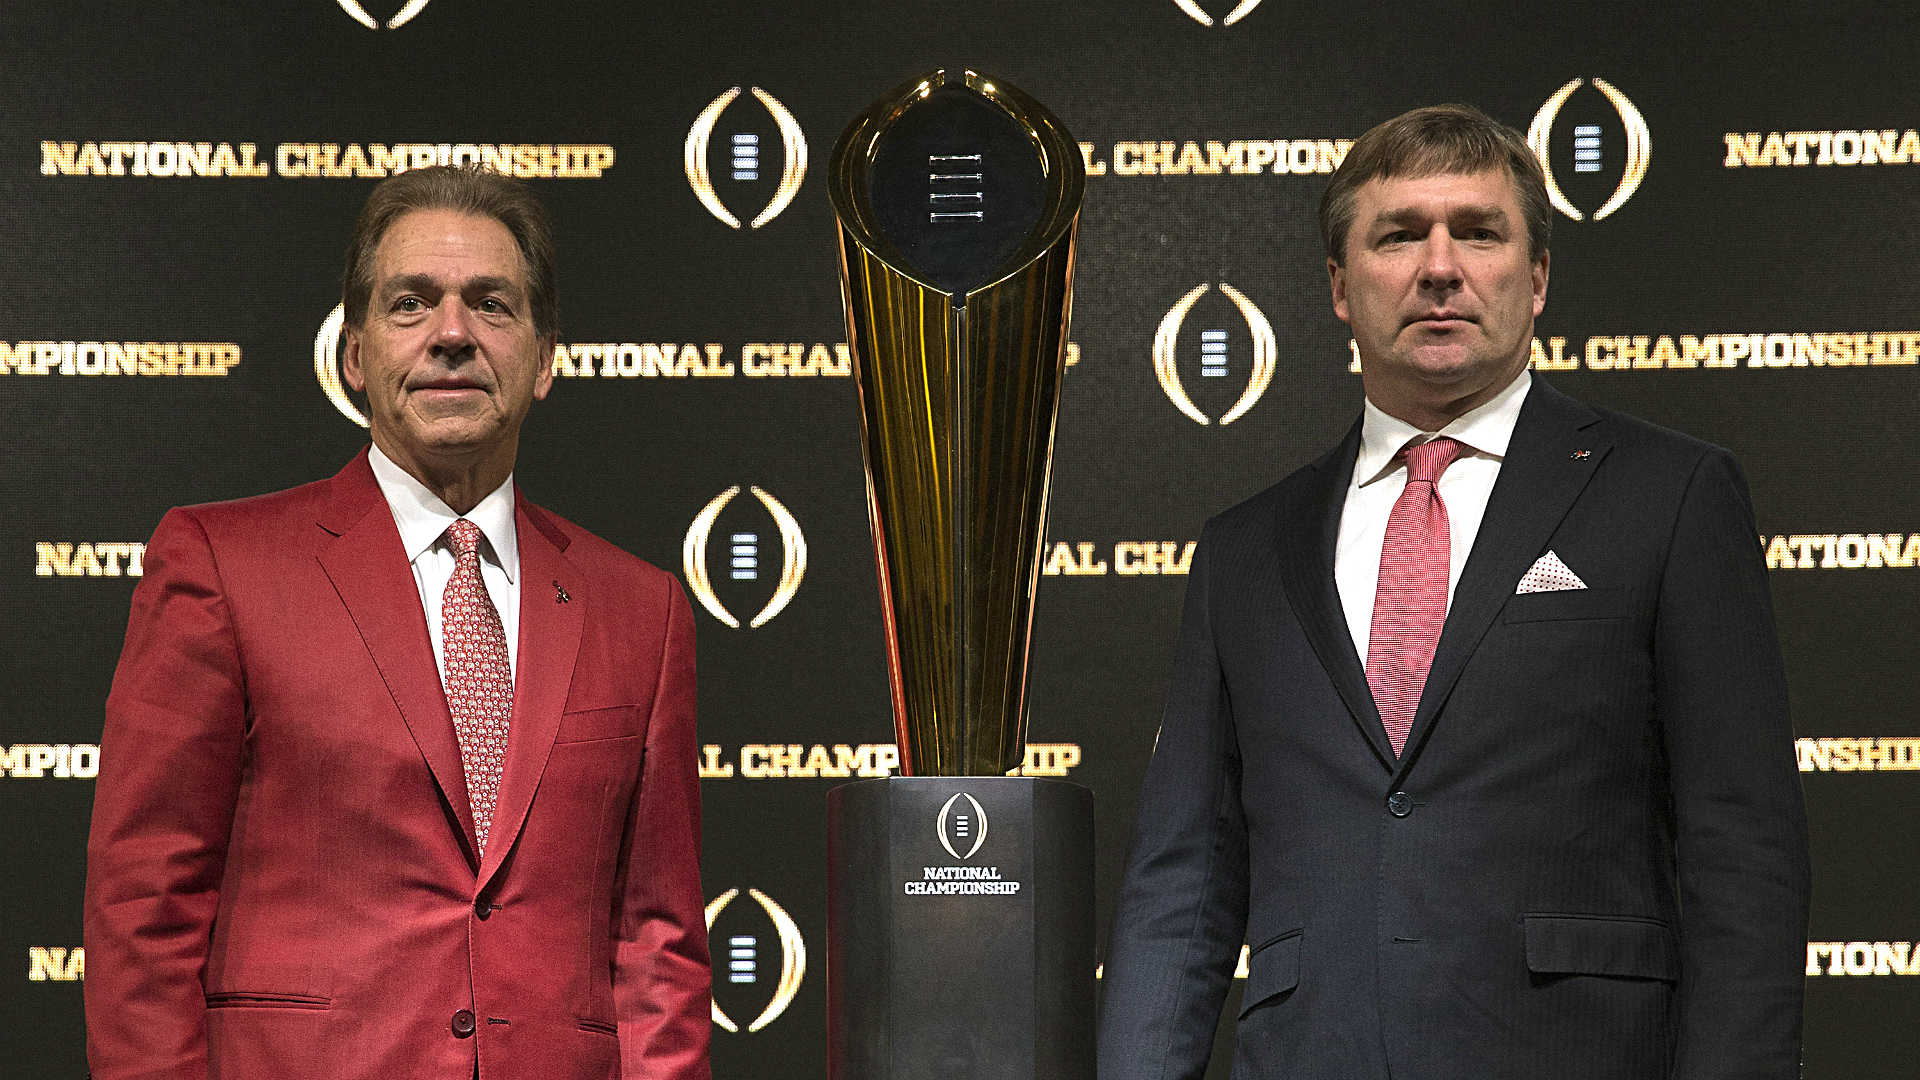 Nick-saban-kirby-smart-051518-getty-ftr_1pao3zjs8ofco1va7z7bmsjqnm